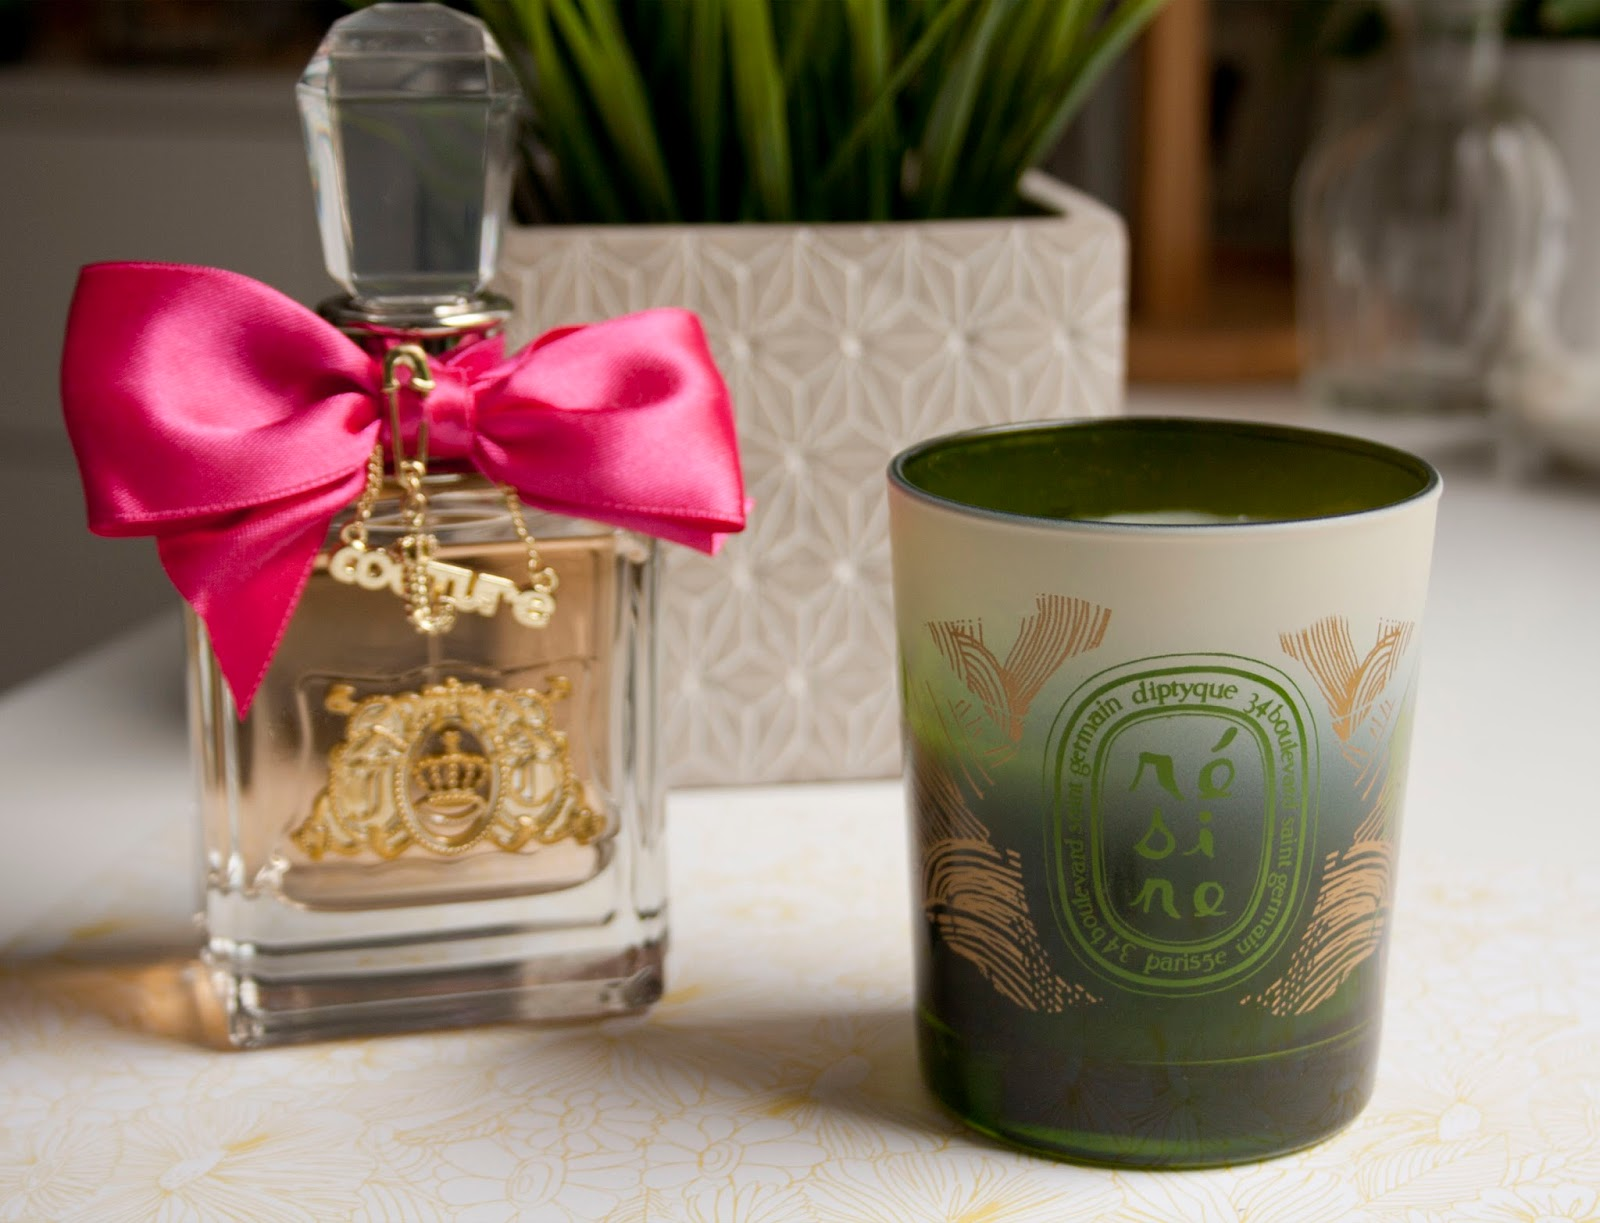 Couture Couture Juicy Couture Dyptique Resine